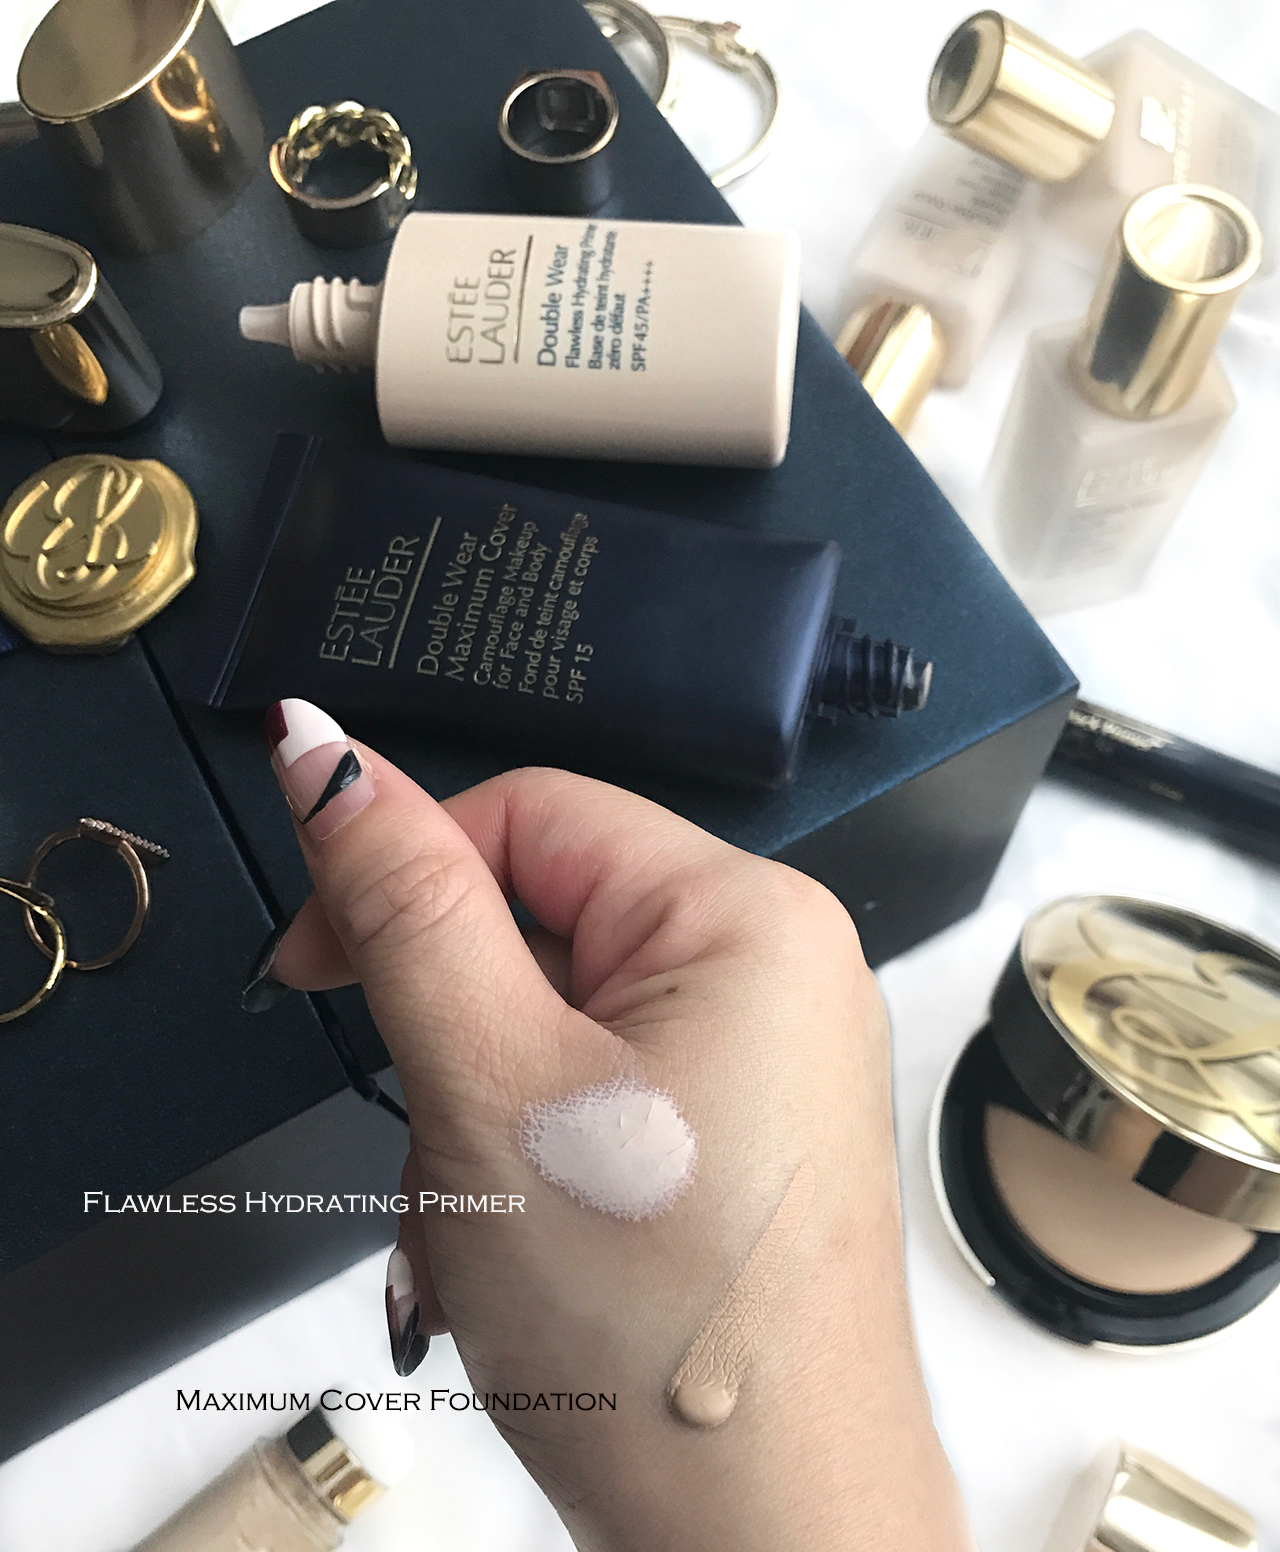 Estee Lauder Double Wear Flawless Hydrating Primer & Maximum Cover Foundation swatches